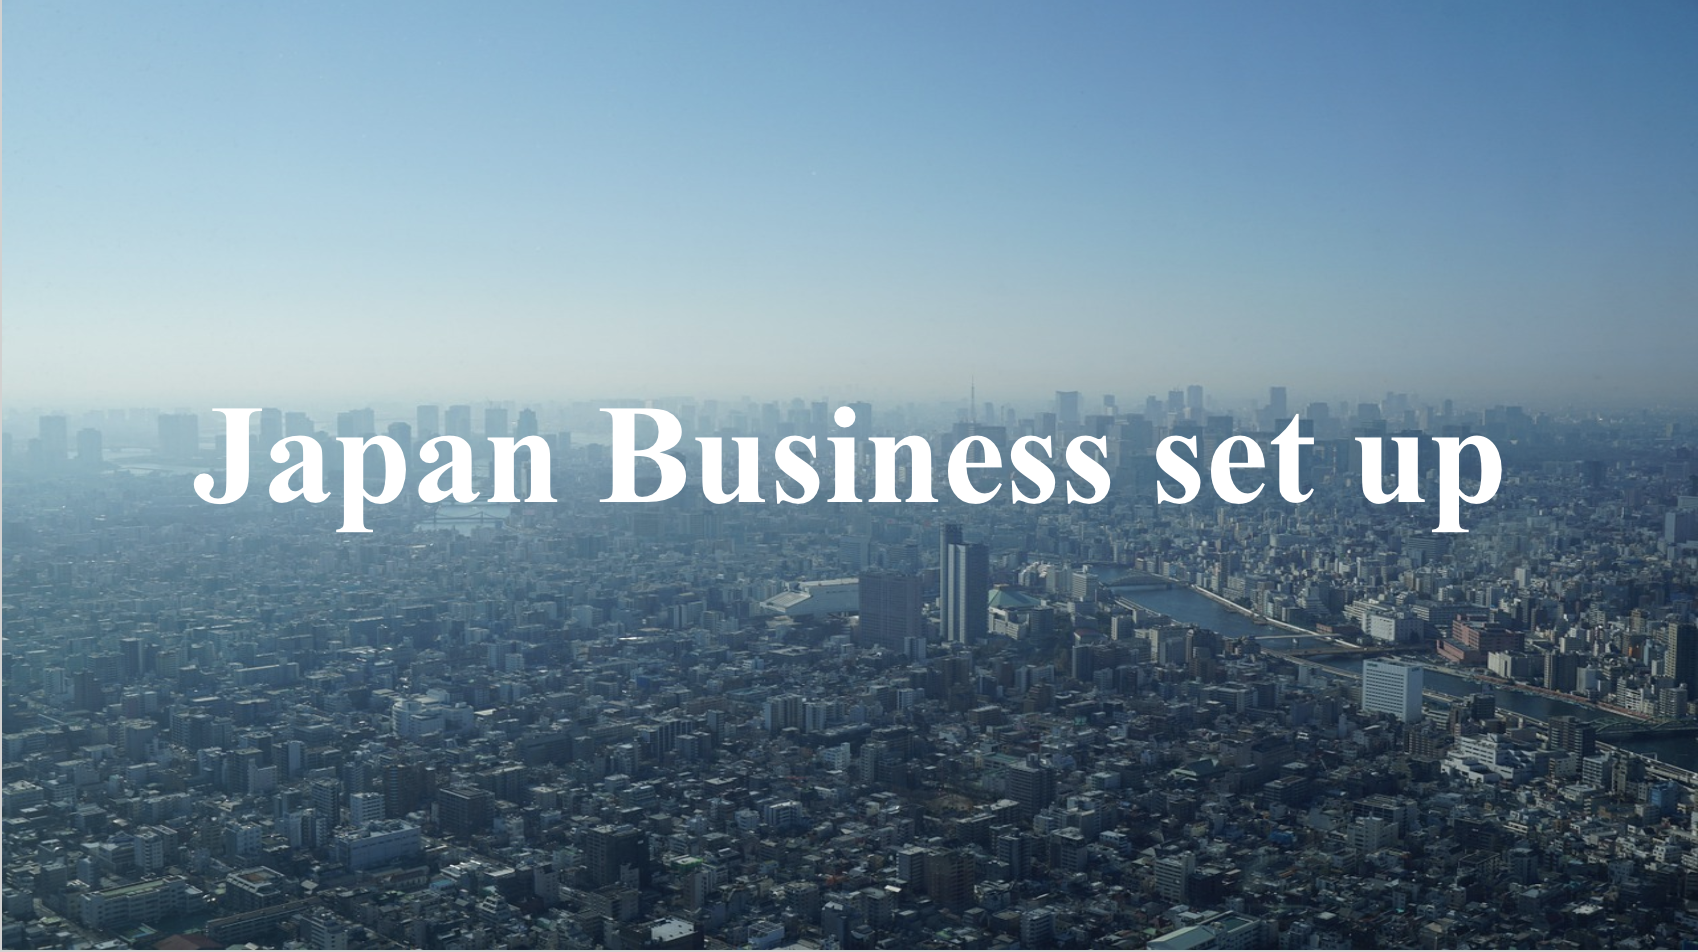 Japan Business set up